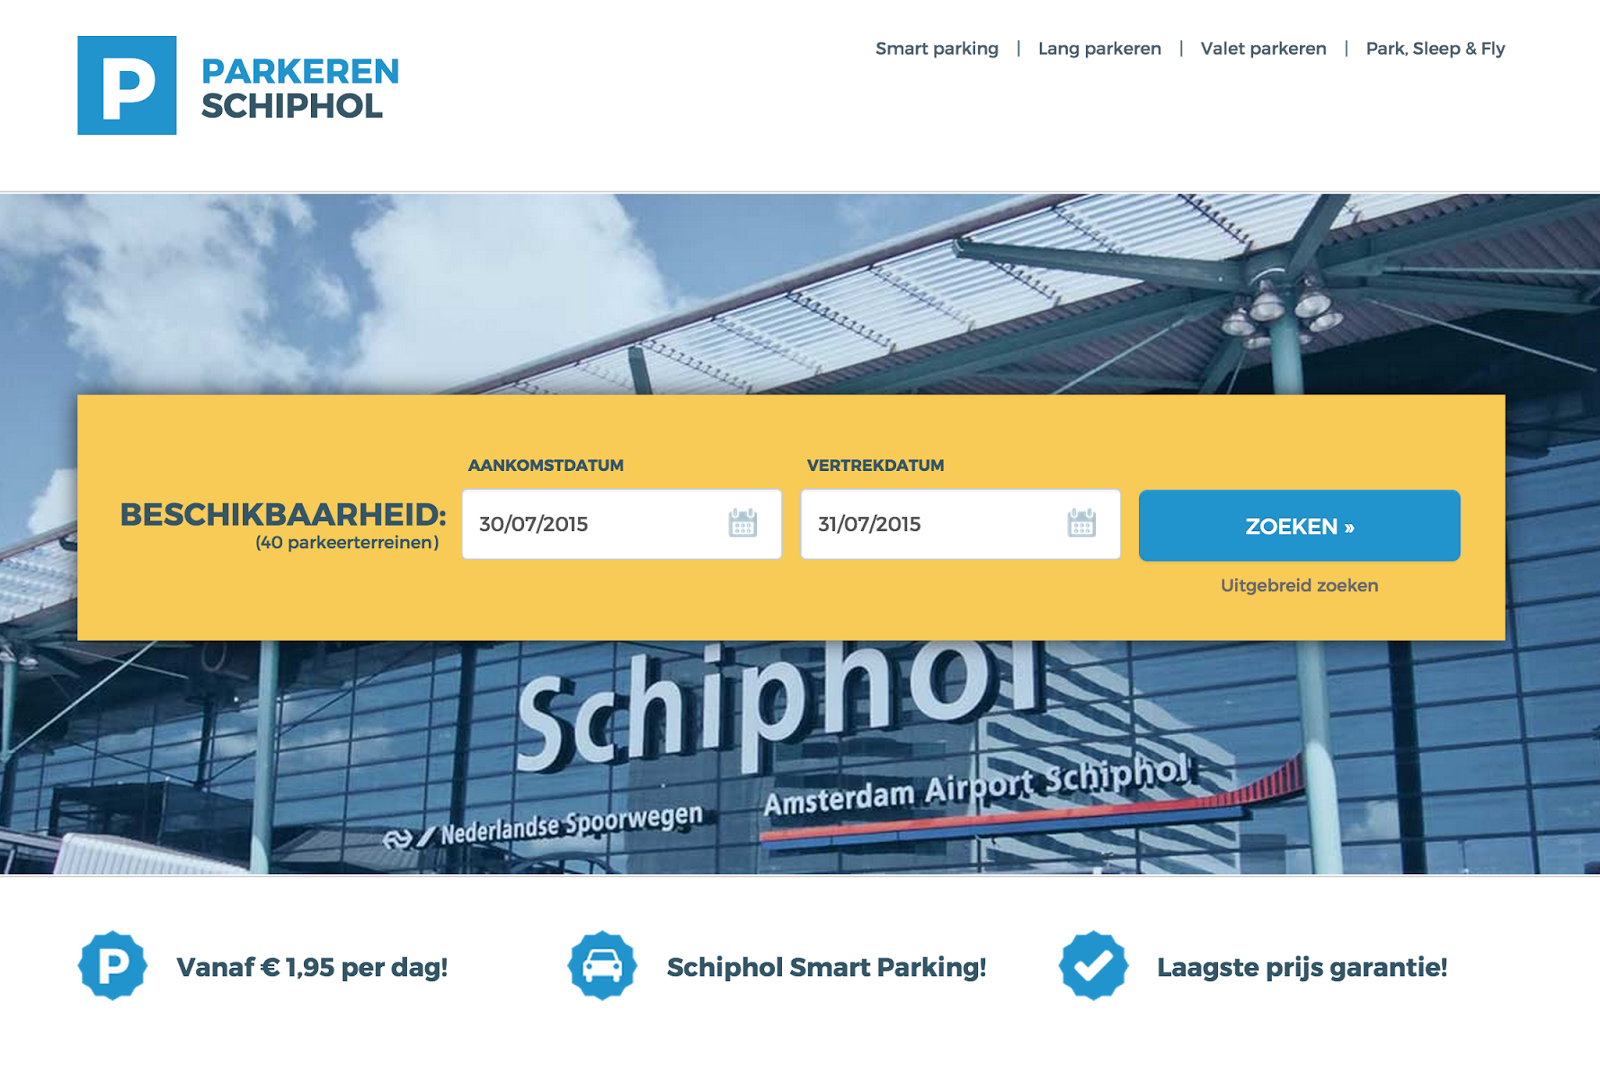 Parking Schiphol Amsterdam accepteert American Express Credit Cards